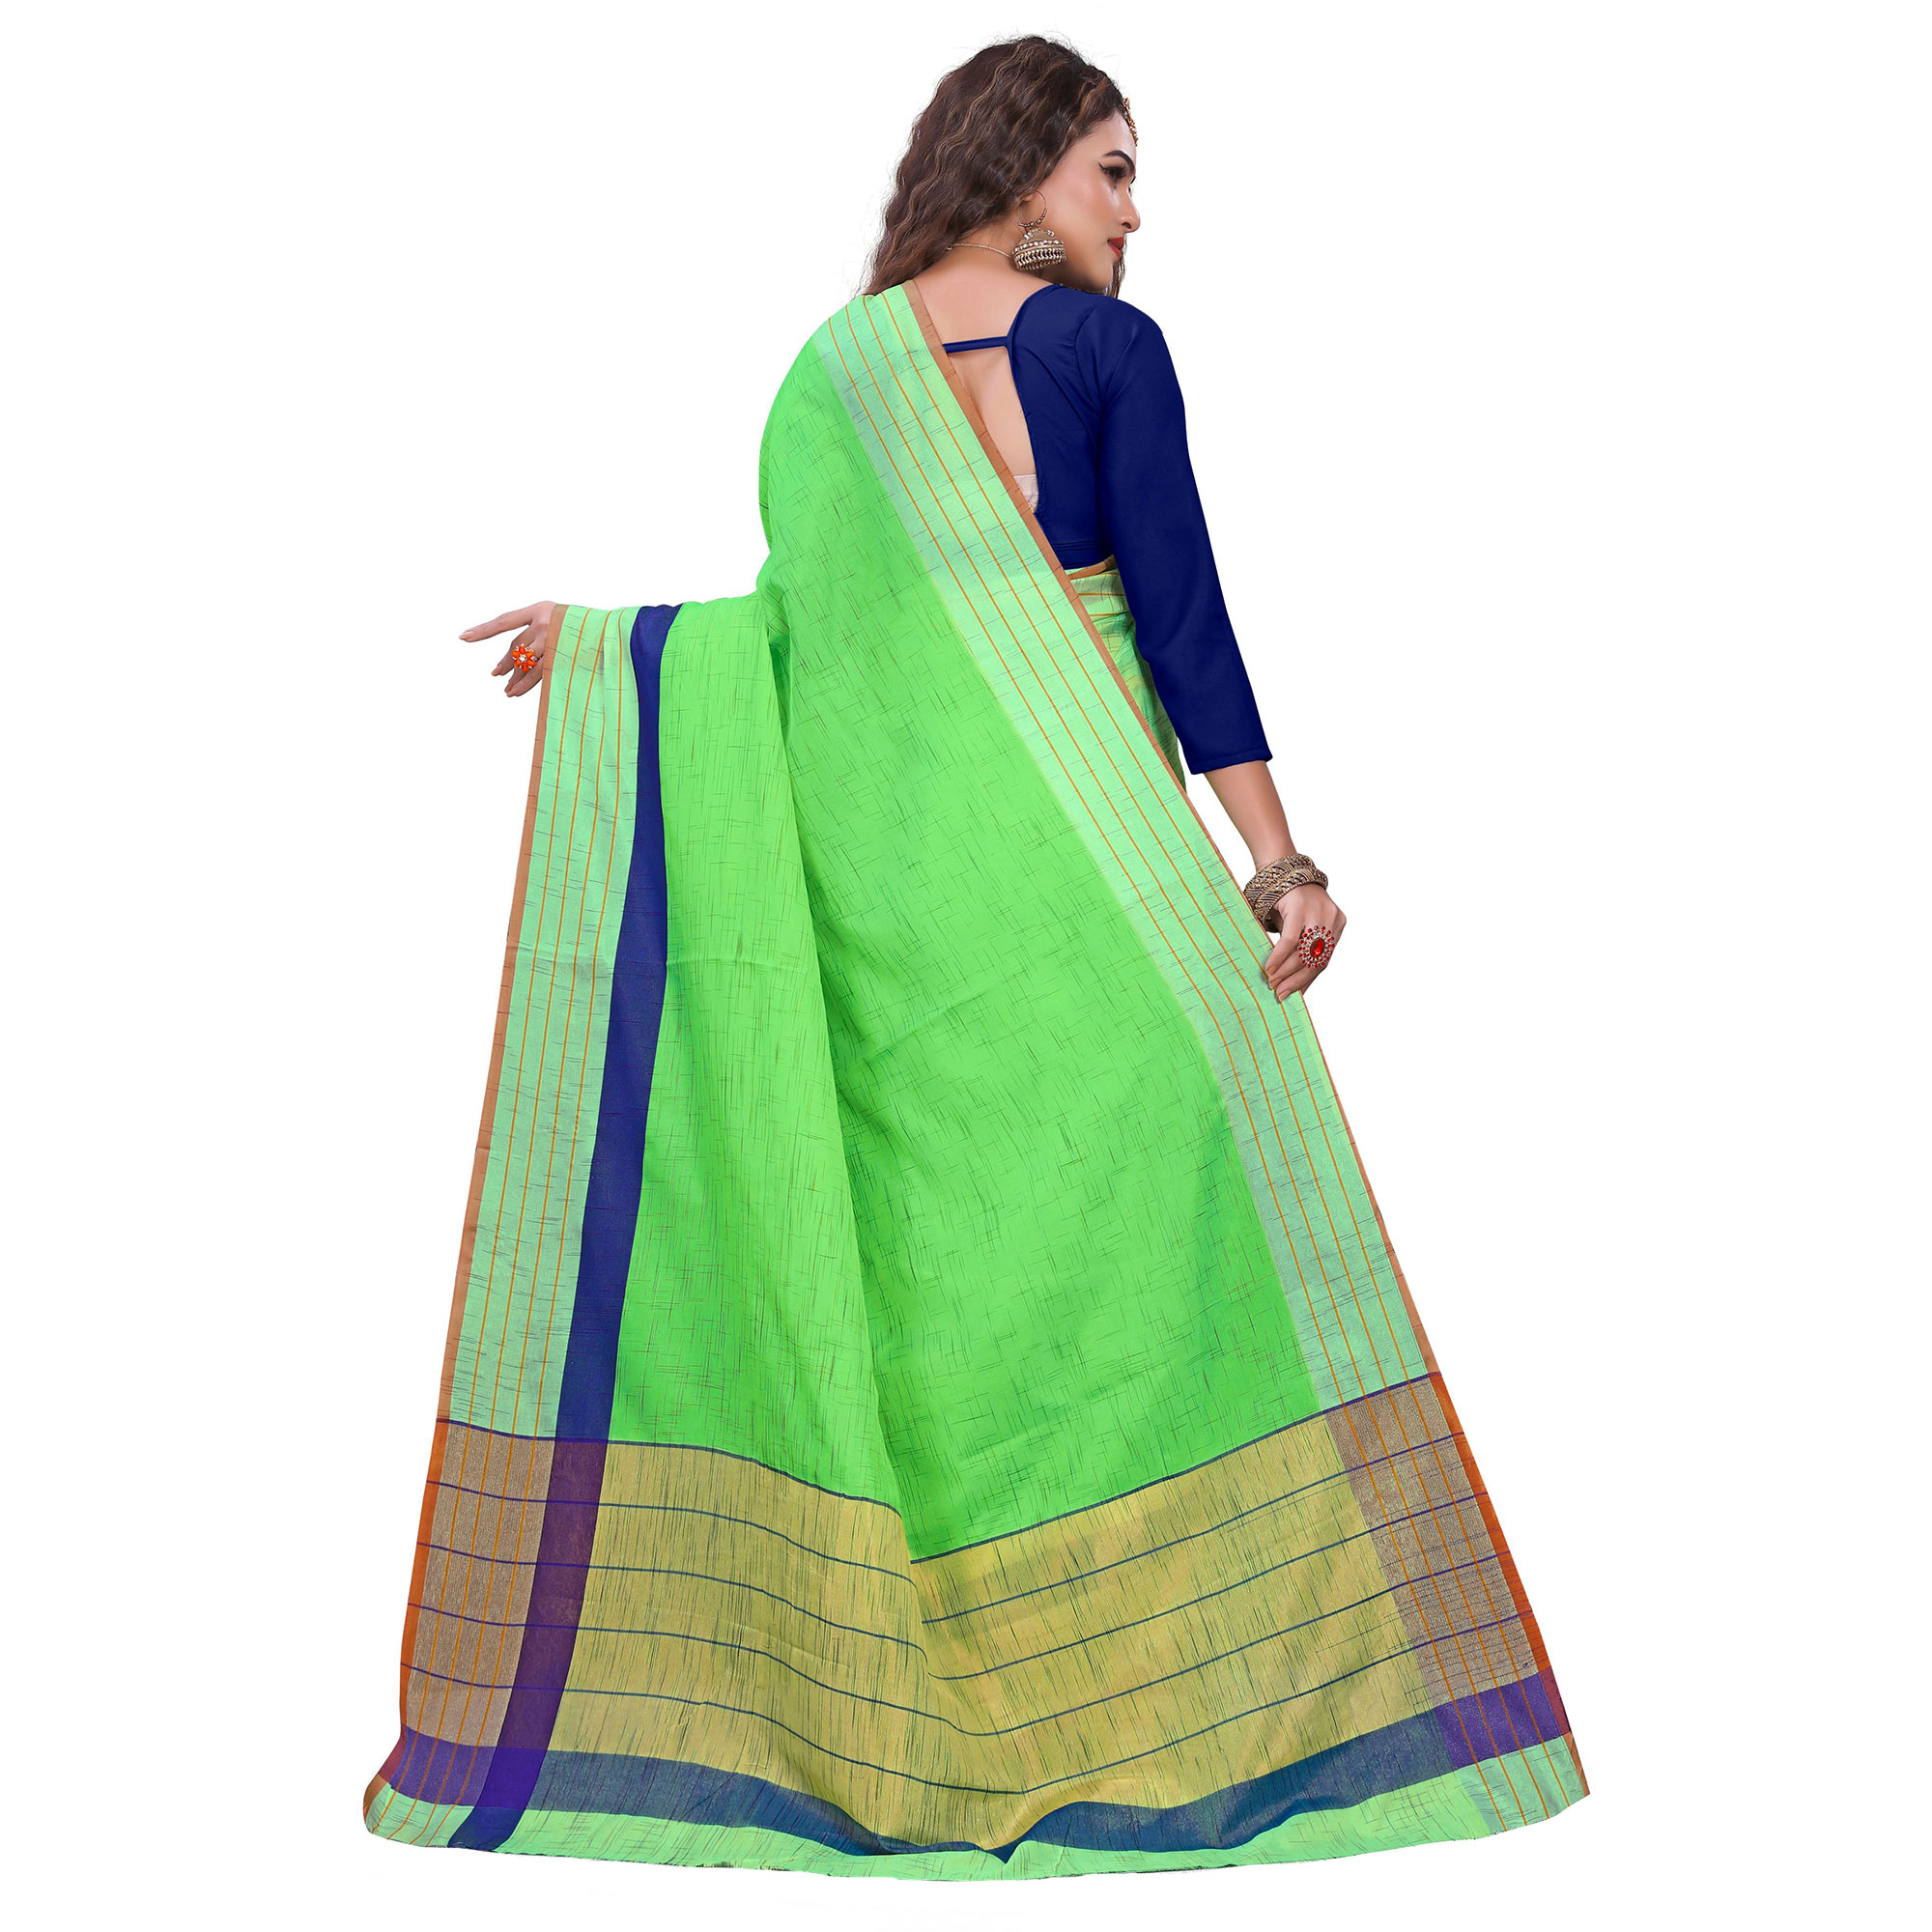 Classy Bright Green Colored Casual Printed Art Silk Saree